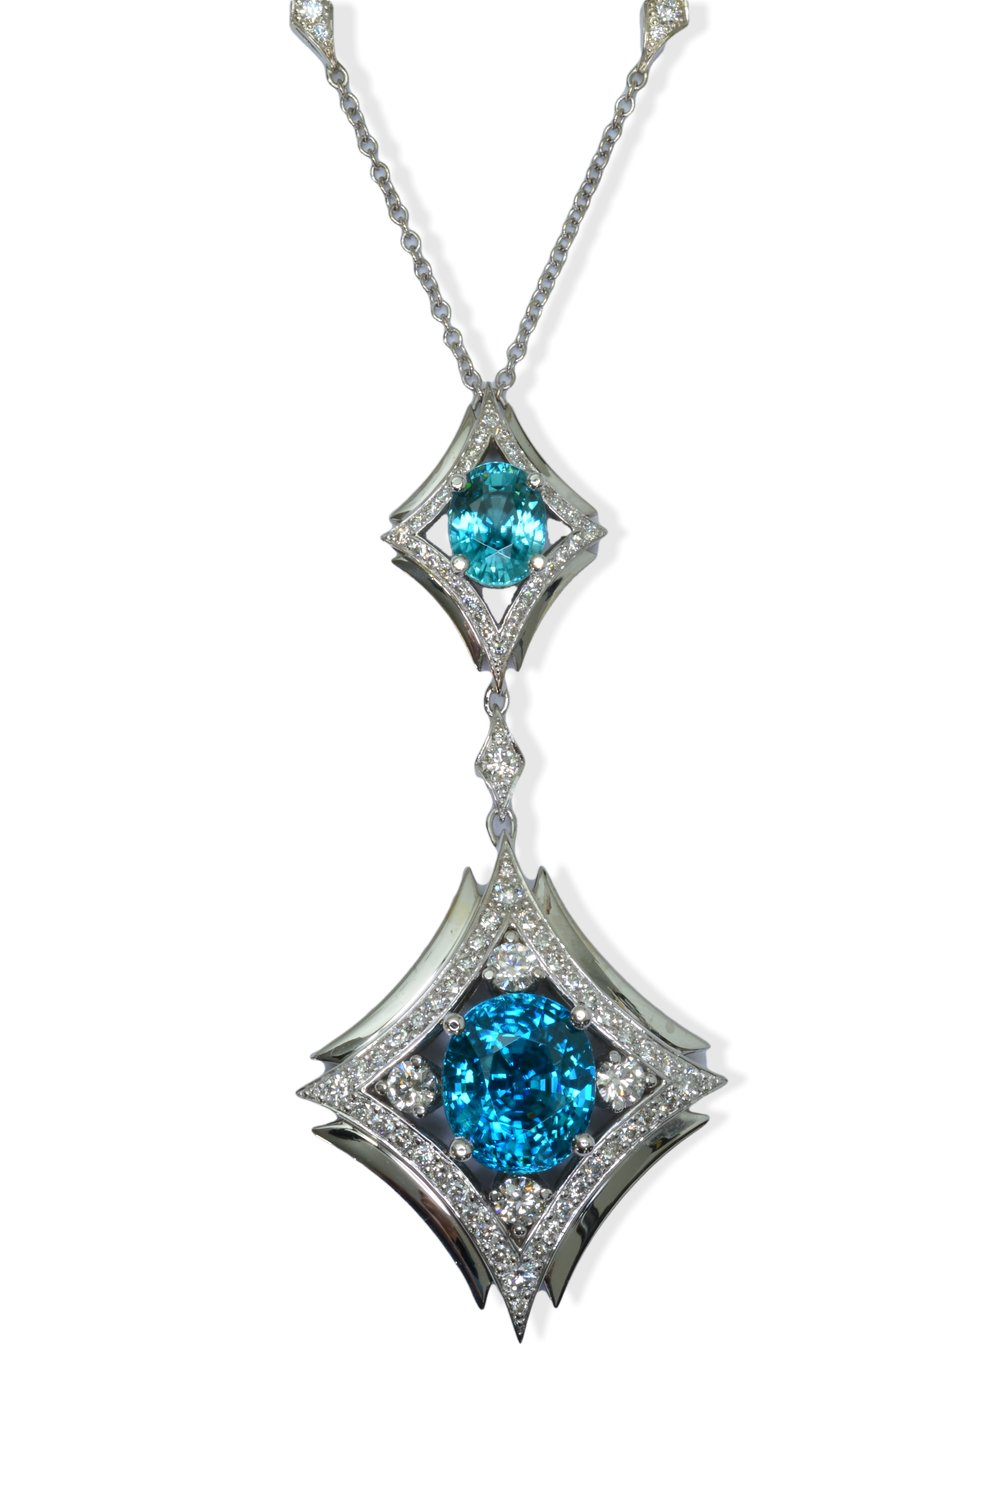 Blue Zircon necklace, designed by and found exclusively at The Gem Vault.